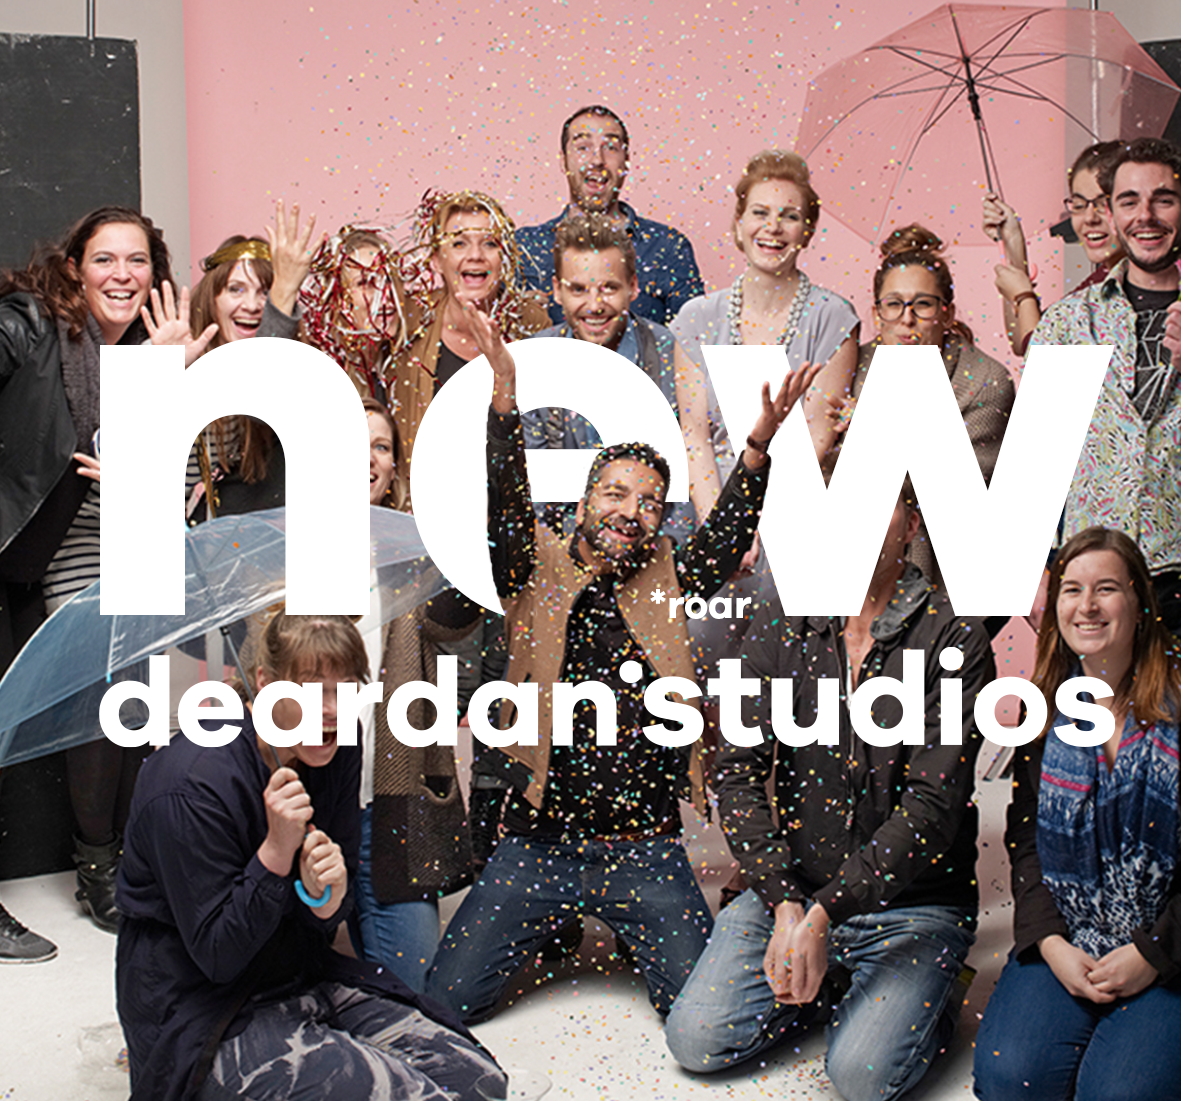 DEARDAN STUDIOS for snack-sized video production and animation with a bite!